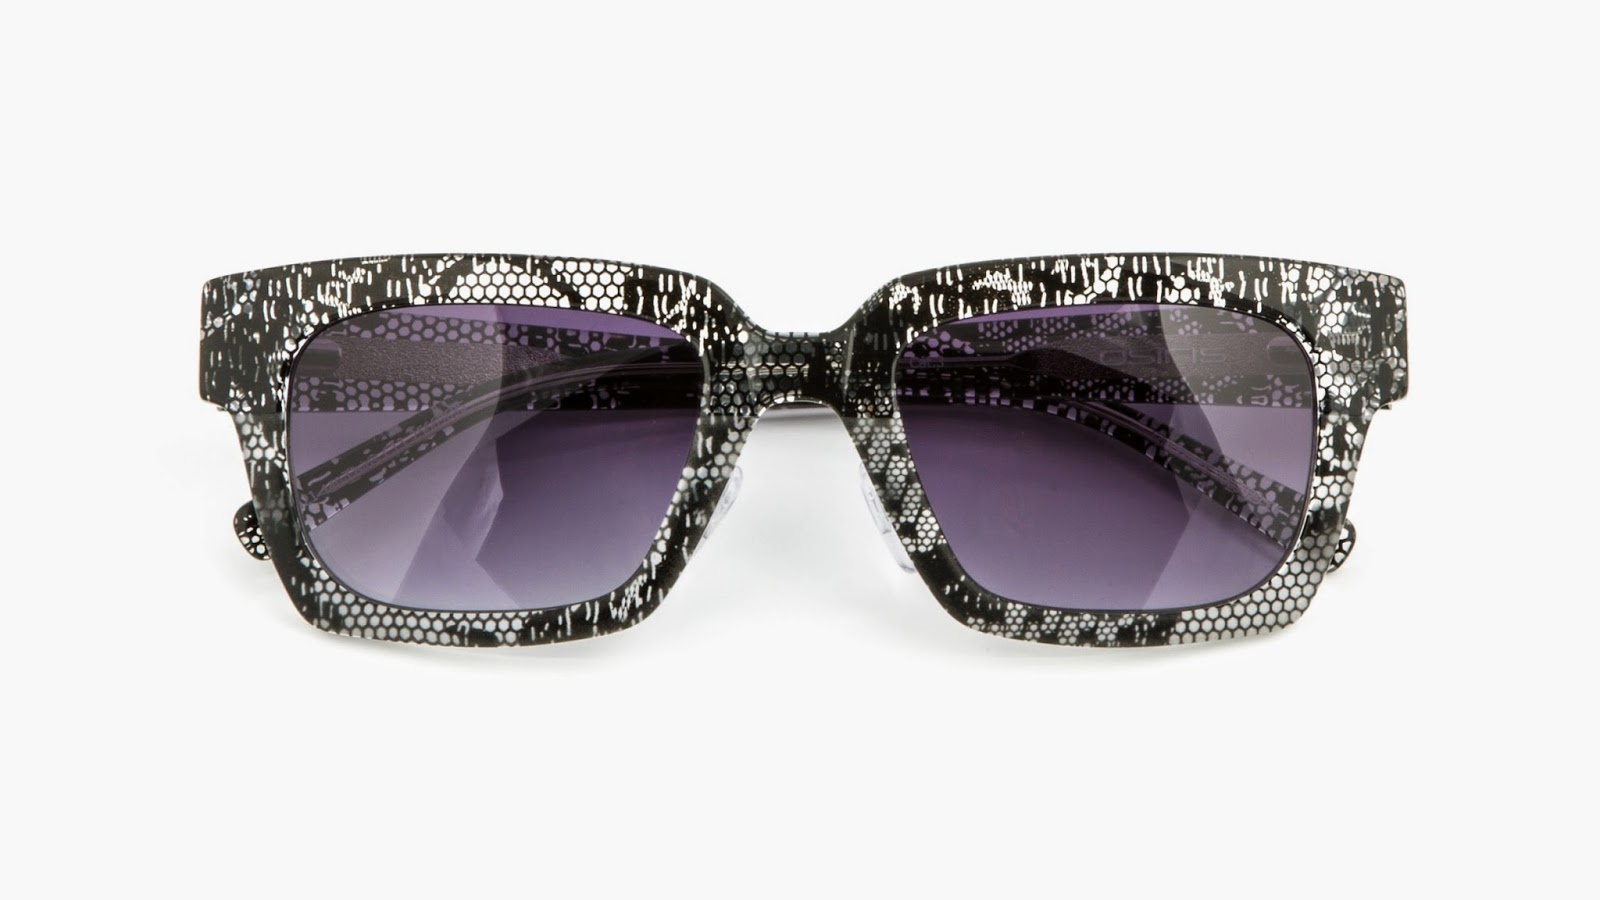 """6e7b82bfb7b9 """"I wanted to diversify from the original collection by using  nature-inspired textures to add an adventurous new dimension of touch and  feel to eyewear"""" ..."""